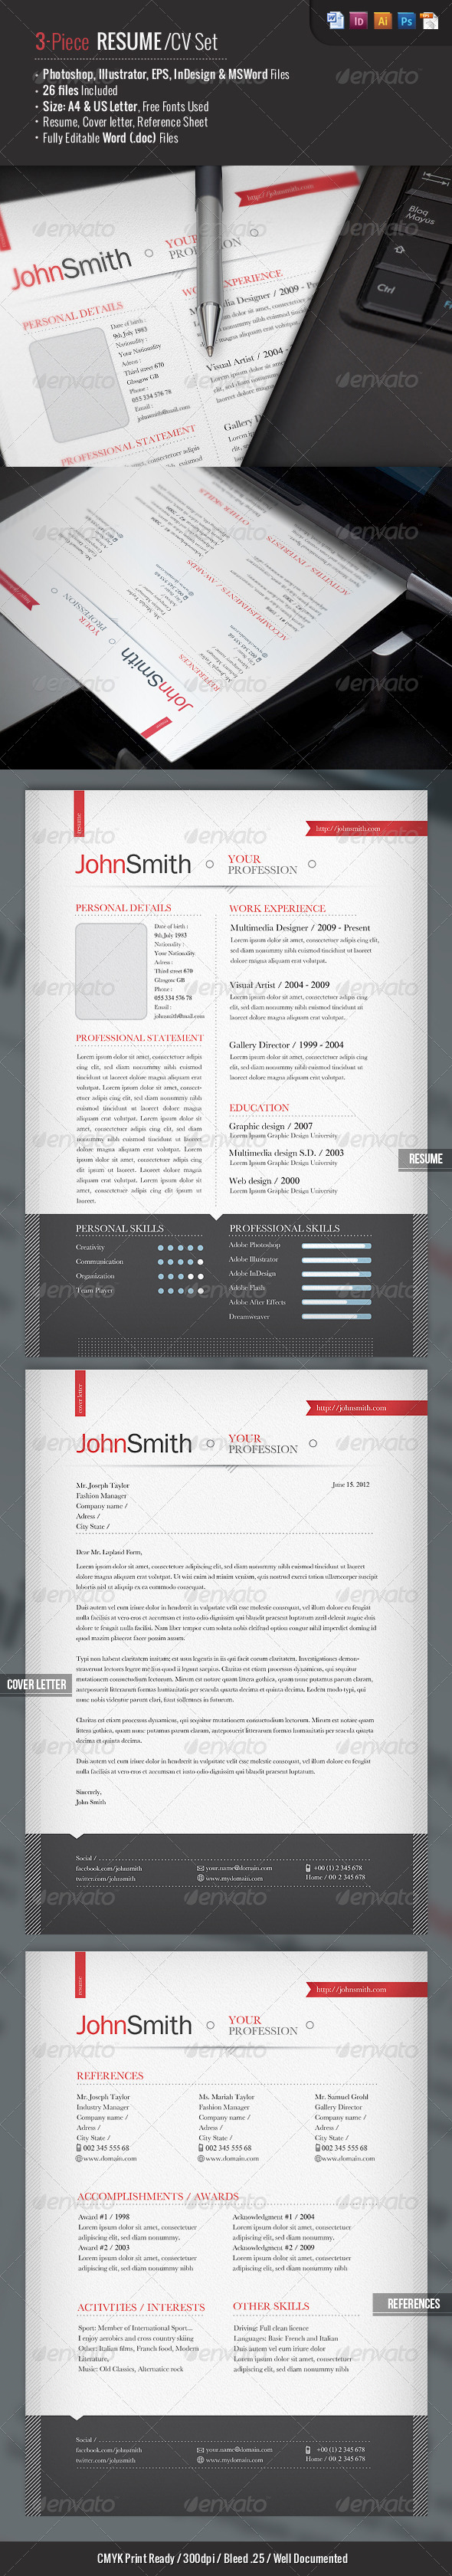 Ready 3-Piece Resume:CV Set